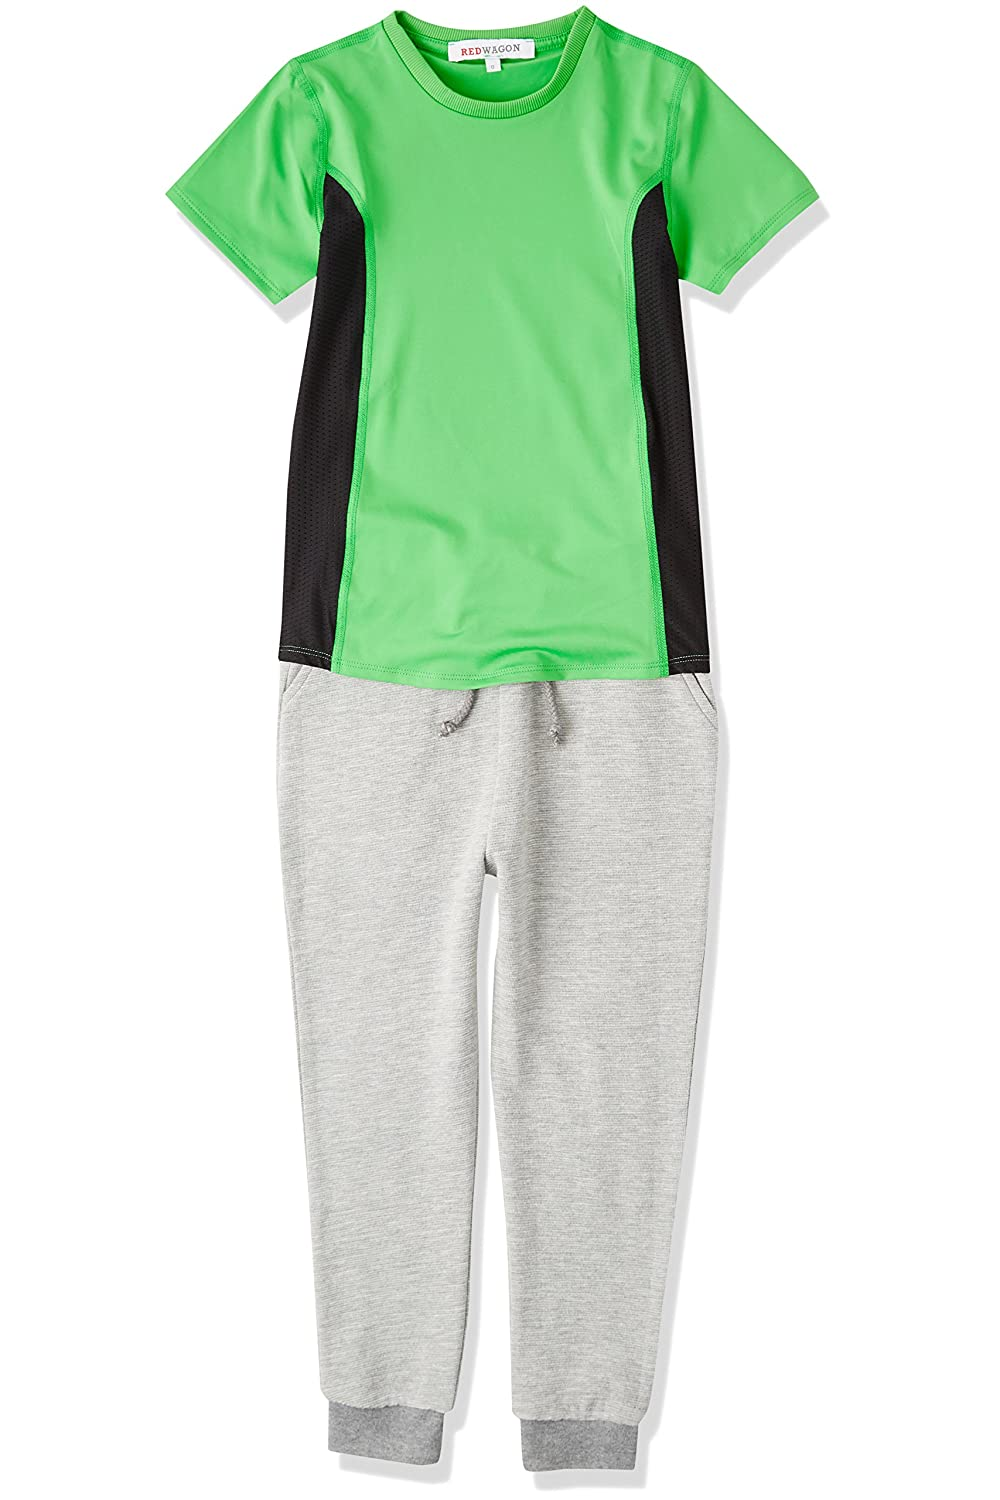 RED WAGON Boys Sports Top